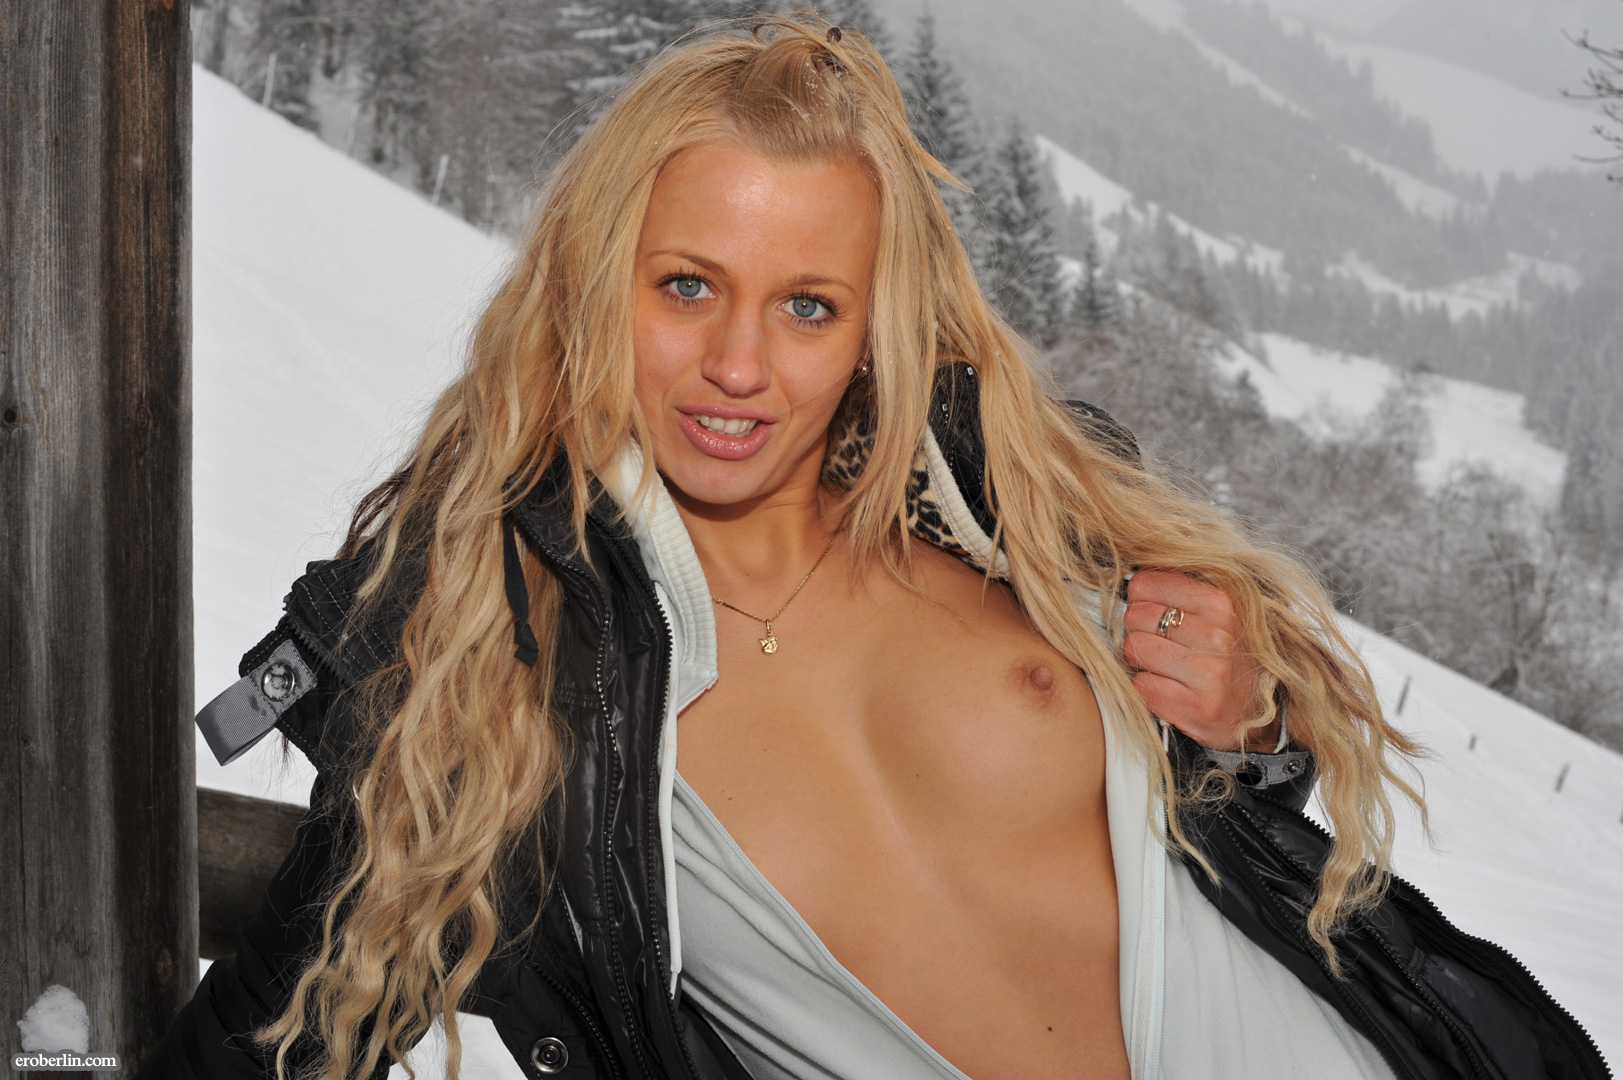 anna-safina-winter-flash-in-public-eroberlin-07